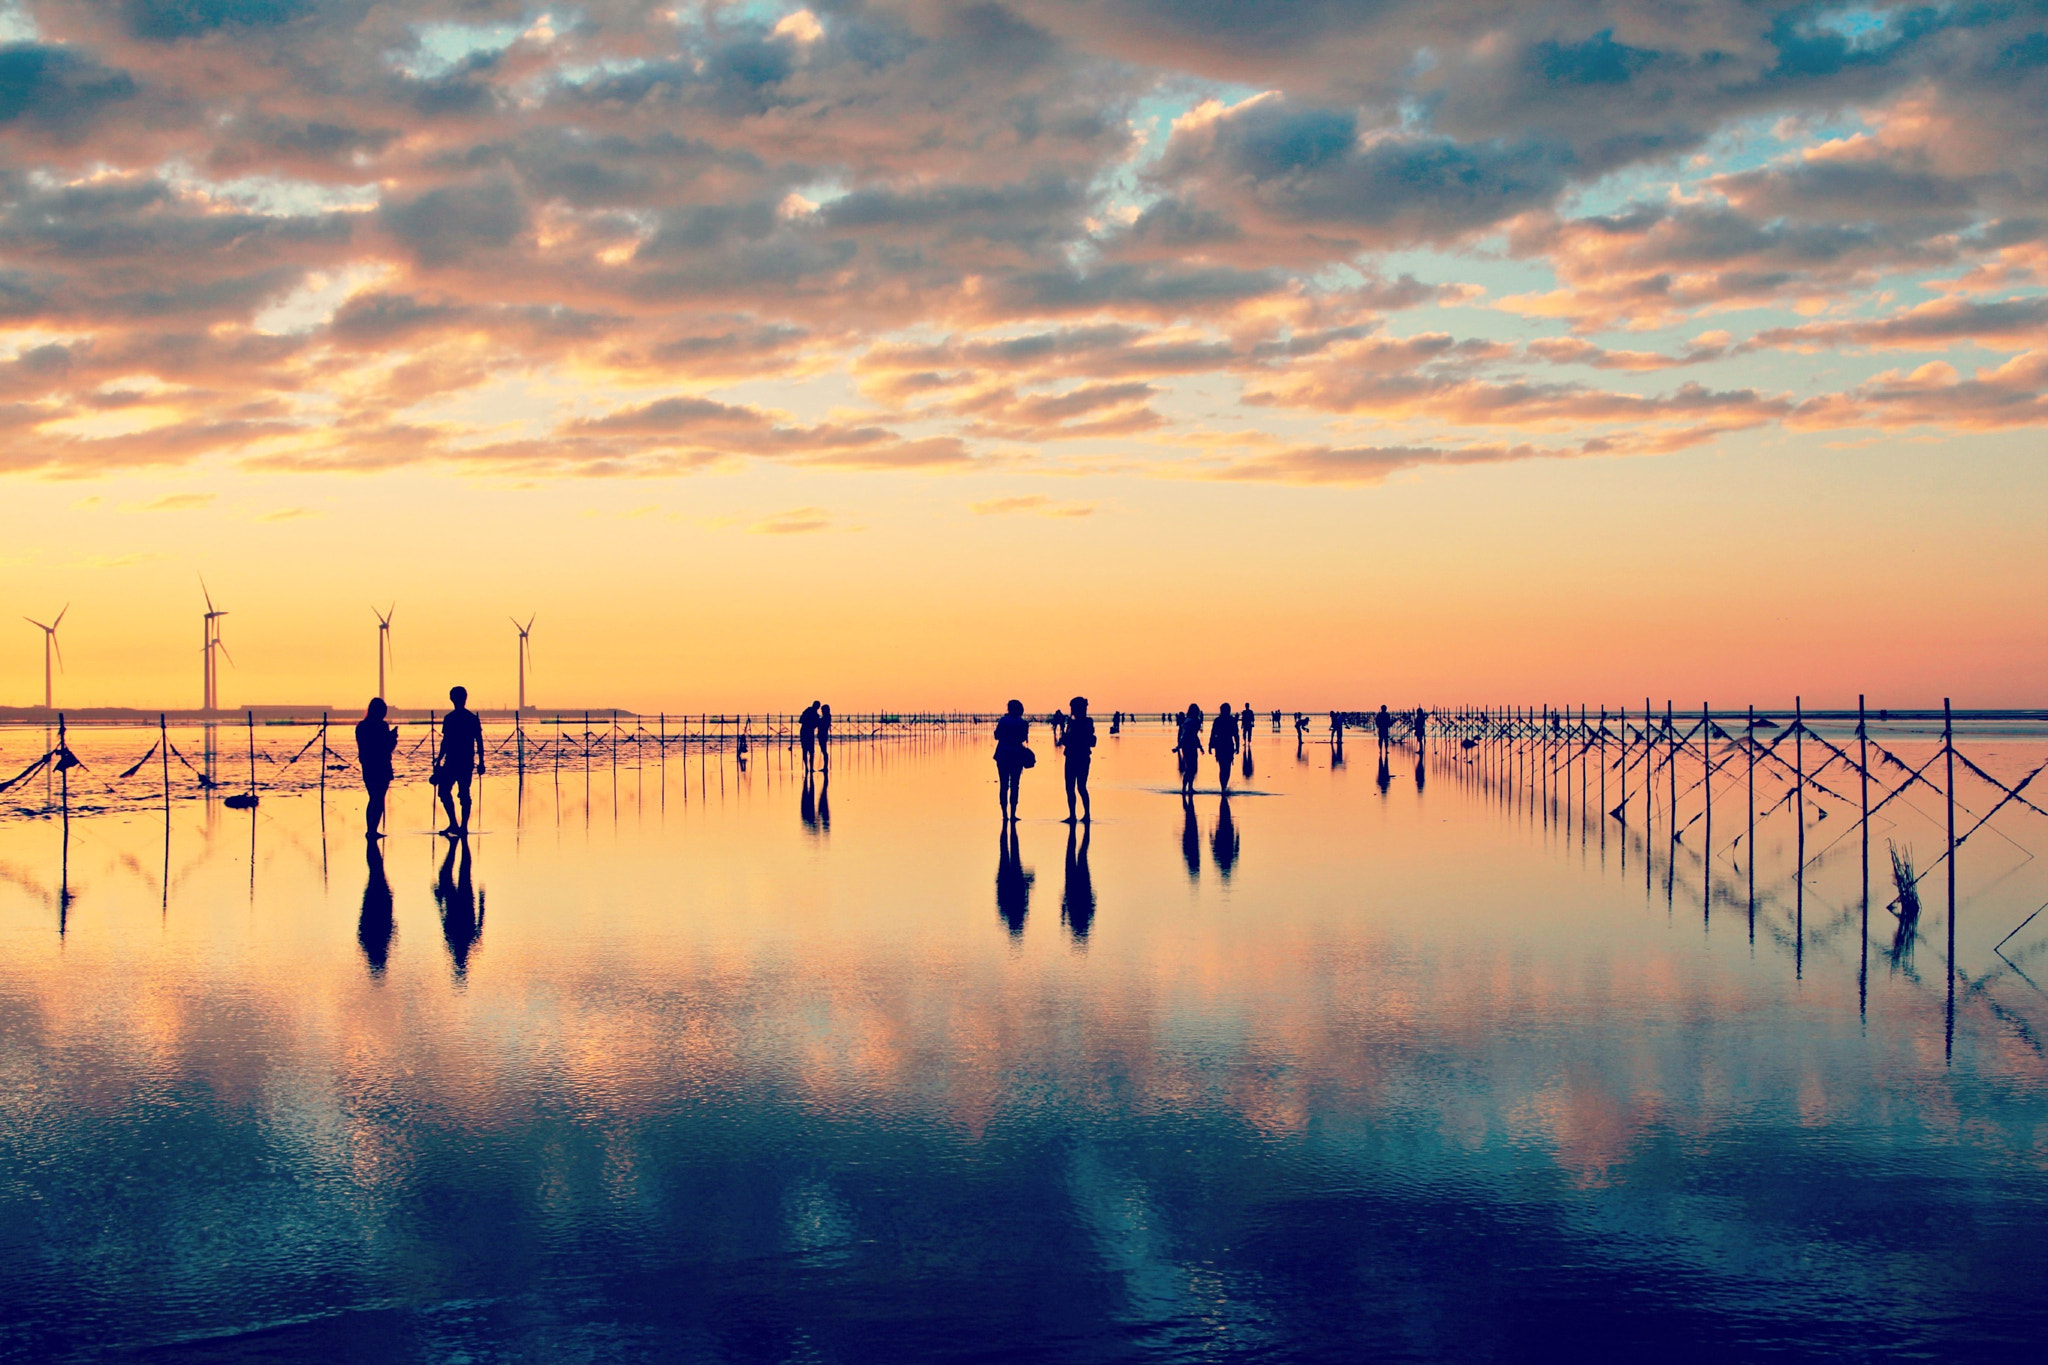 Photograph Couples by Hsin Ong on 500px